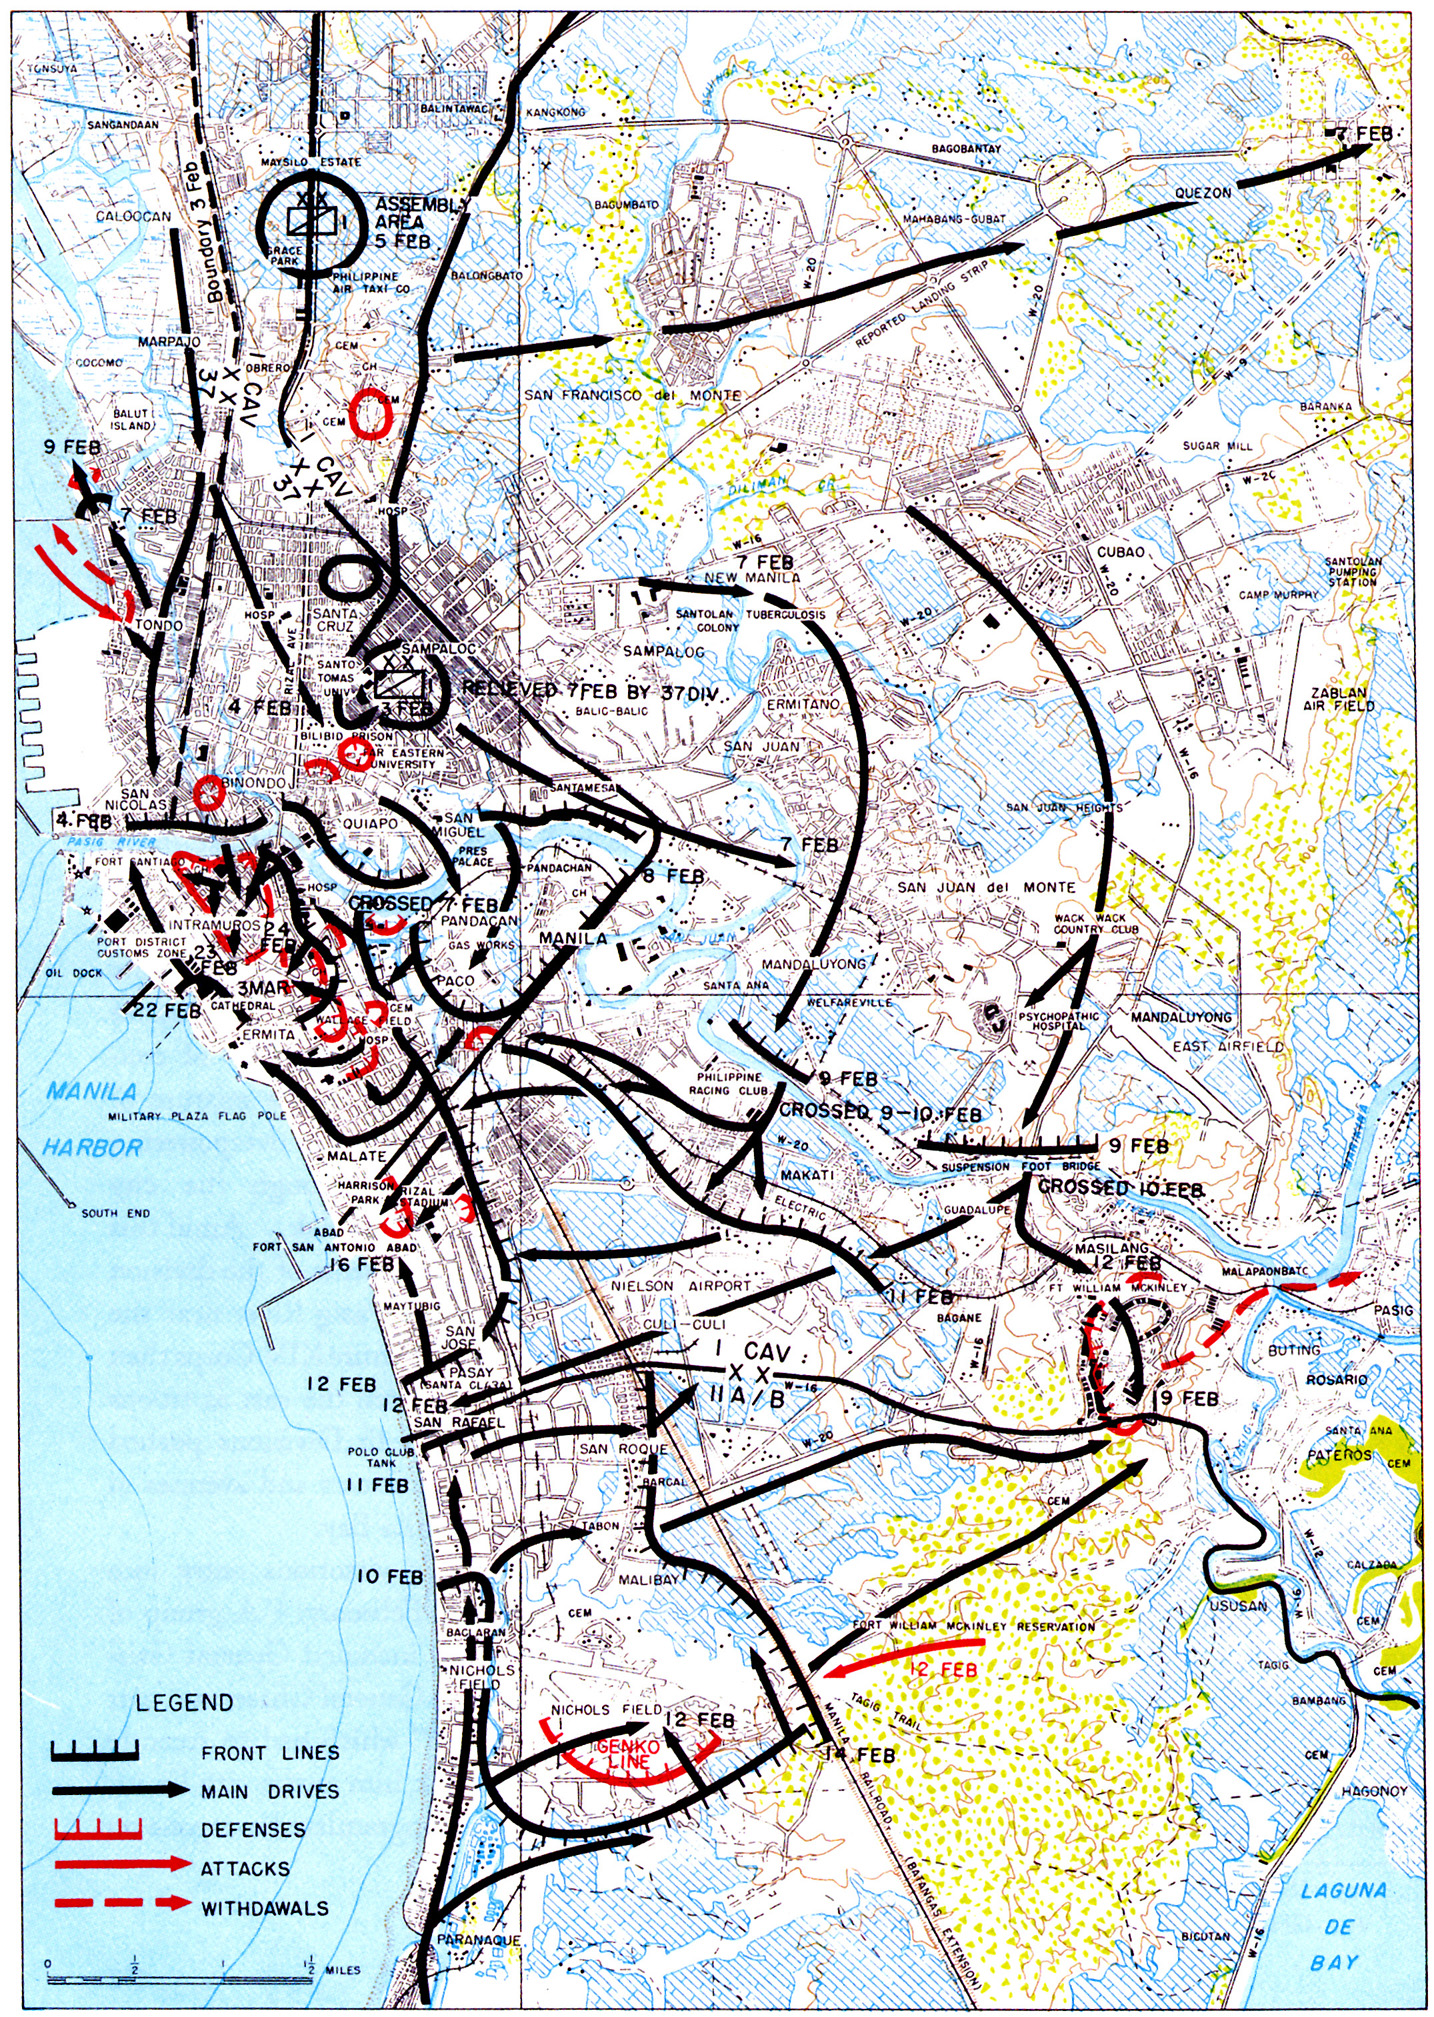 Chapter 9: The Mindoro and Luzon Operations